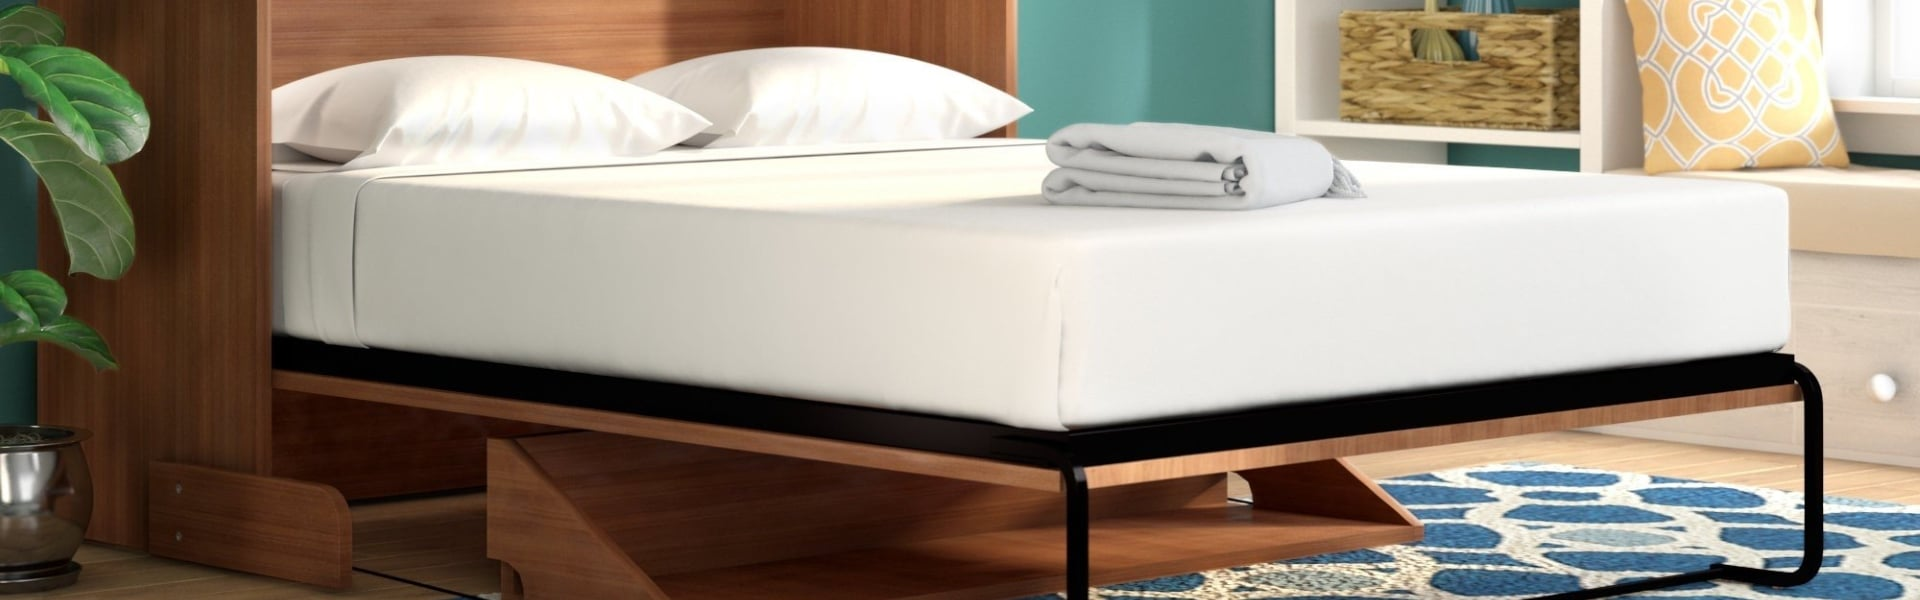 Best Mattresses for Murphy Beds Reviewed in Detail